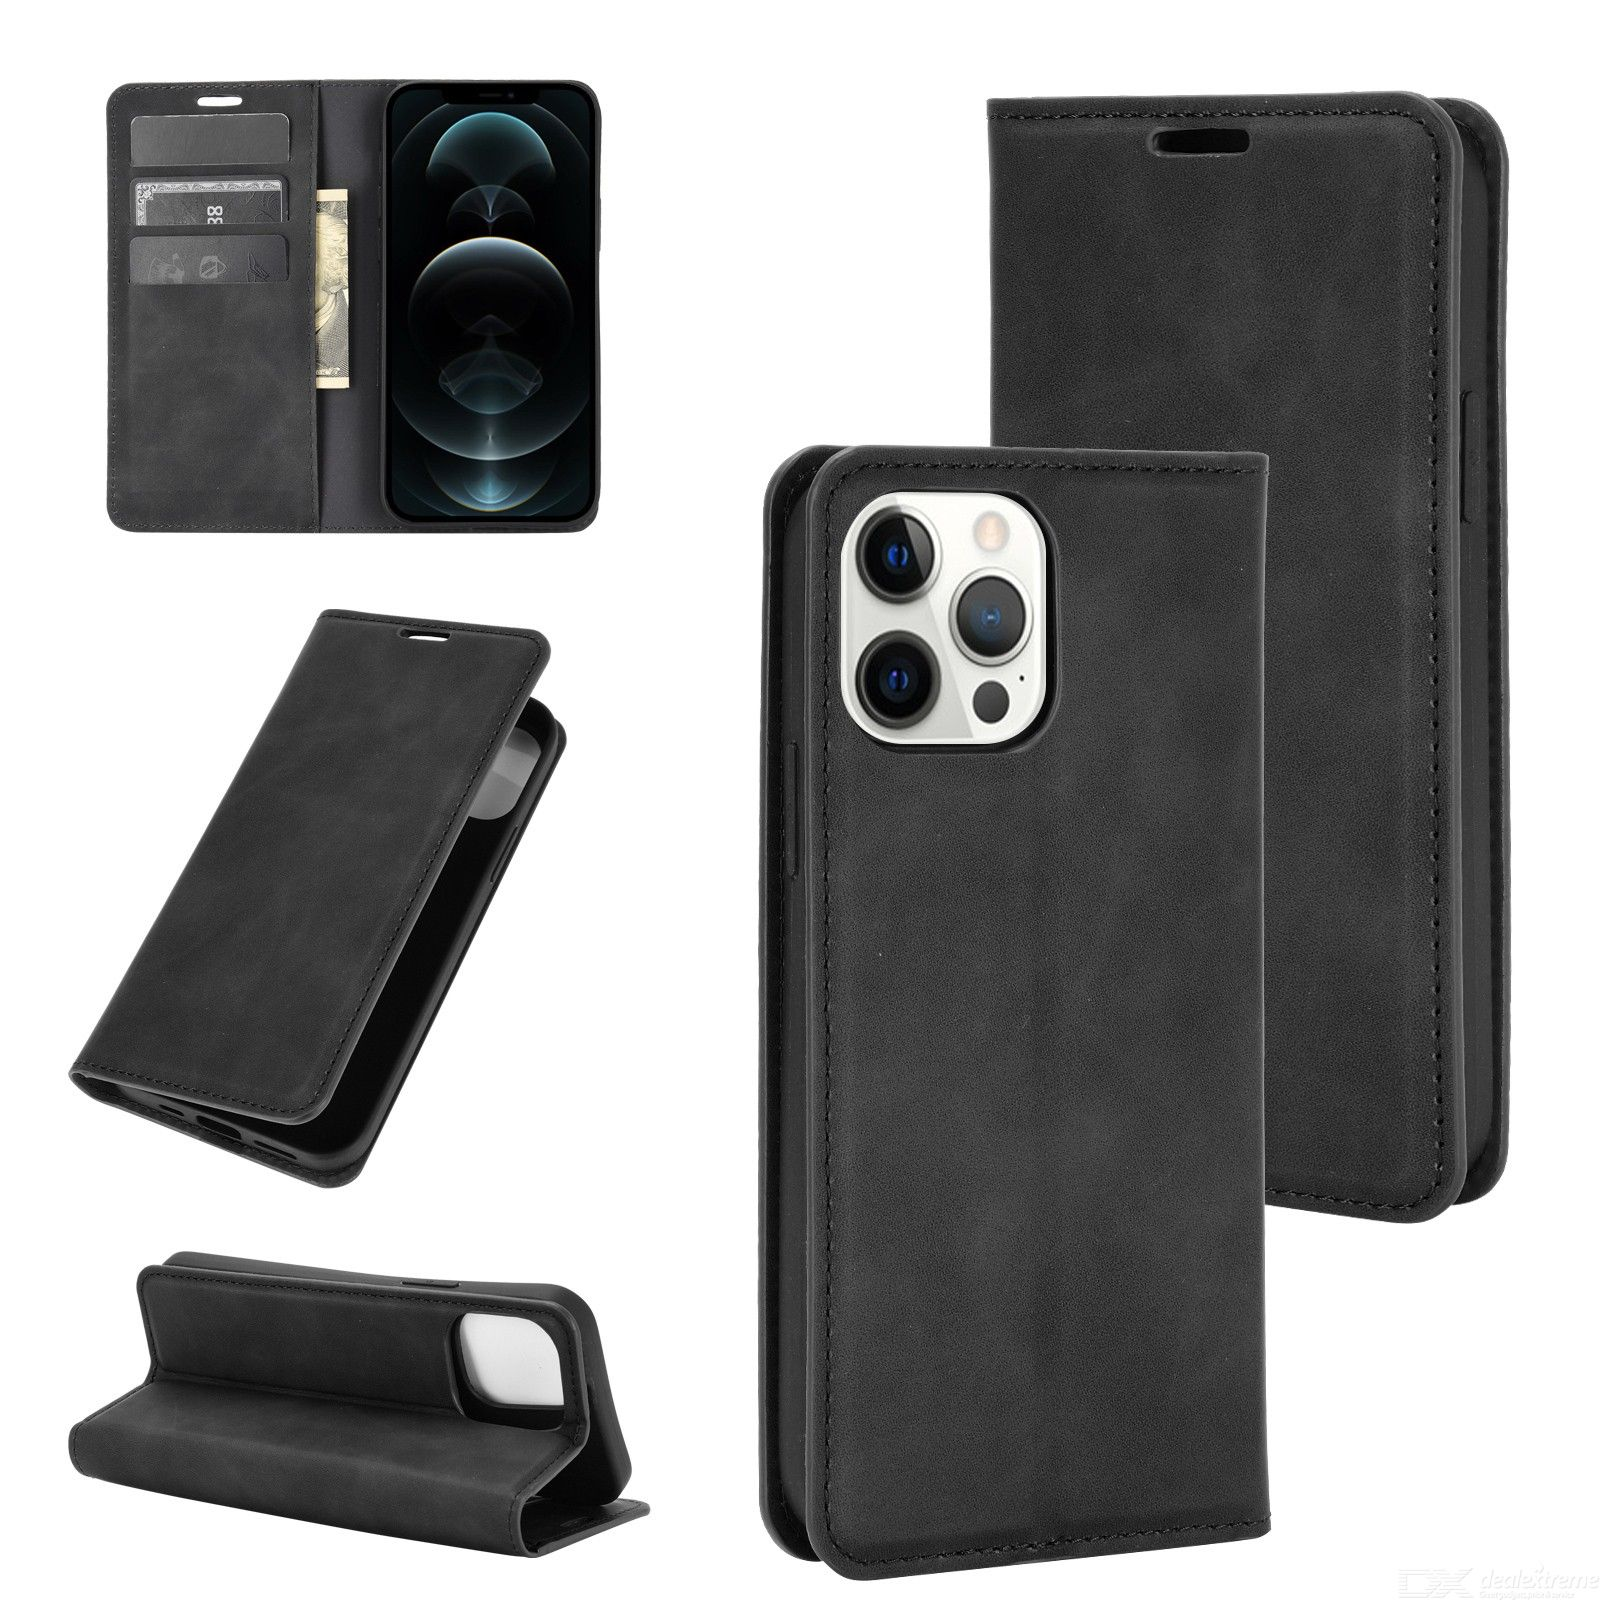 CHUMDIY Luxury PU Leather Wallet Case with Magnetic Closure for iPhone 12 Pro